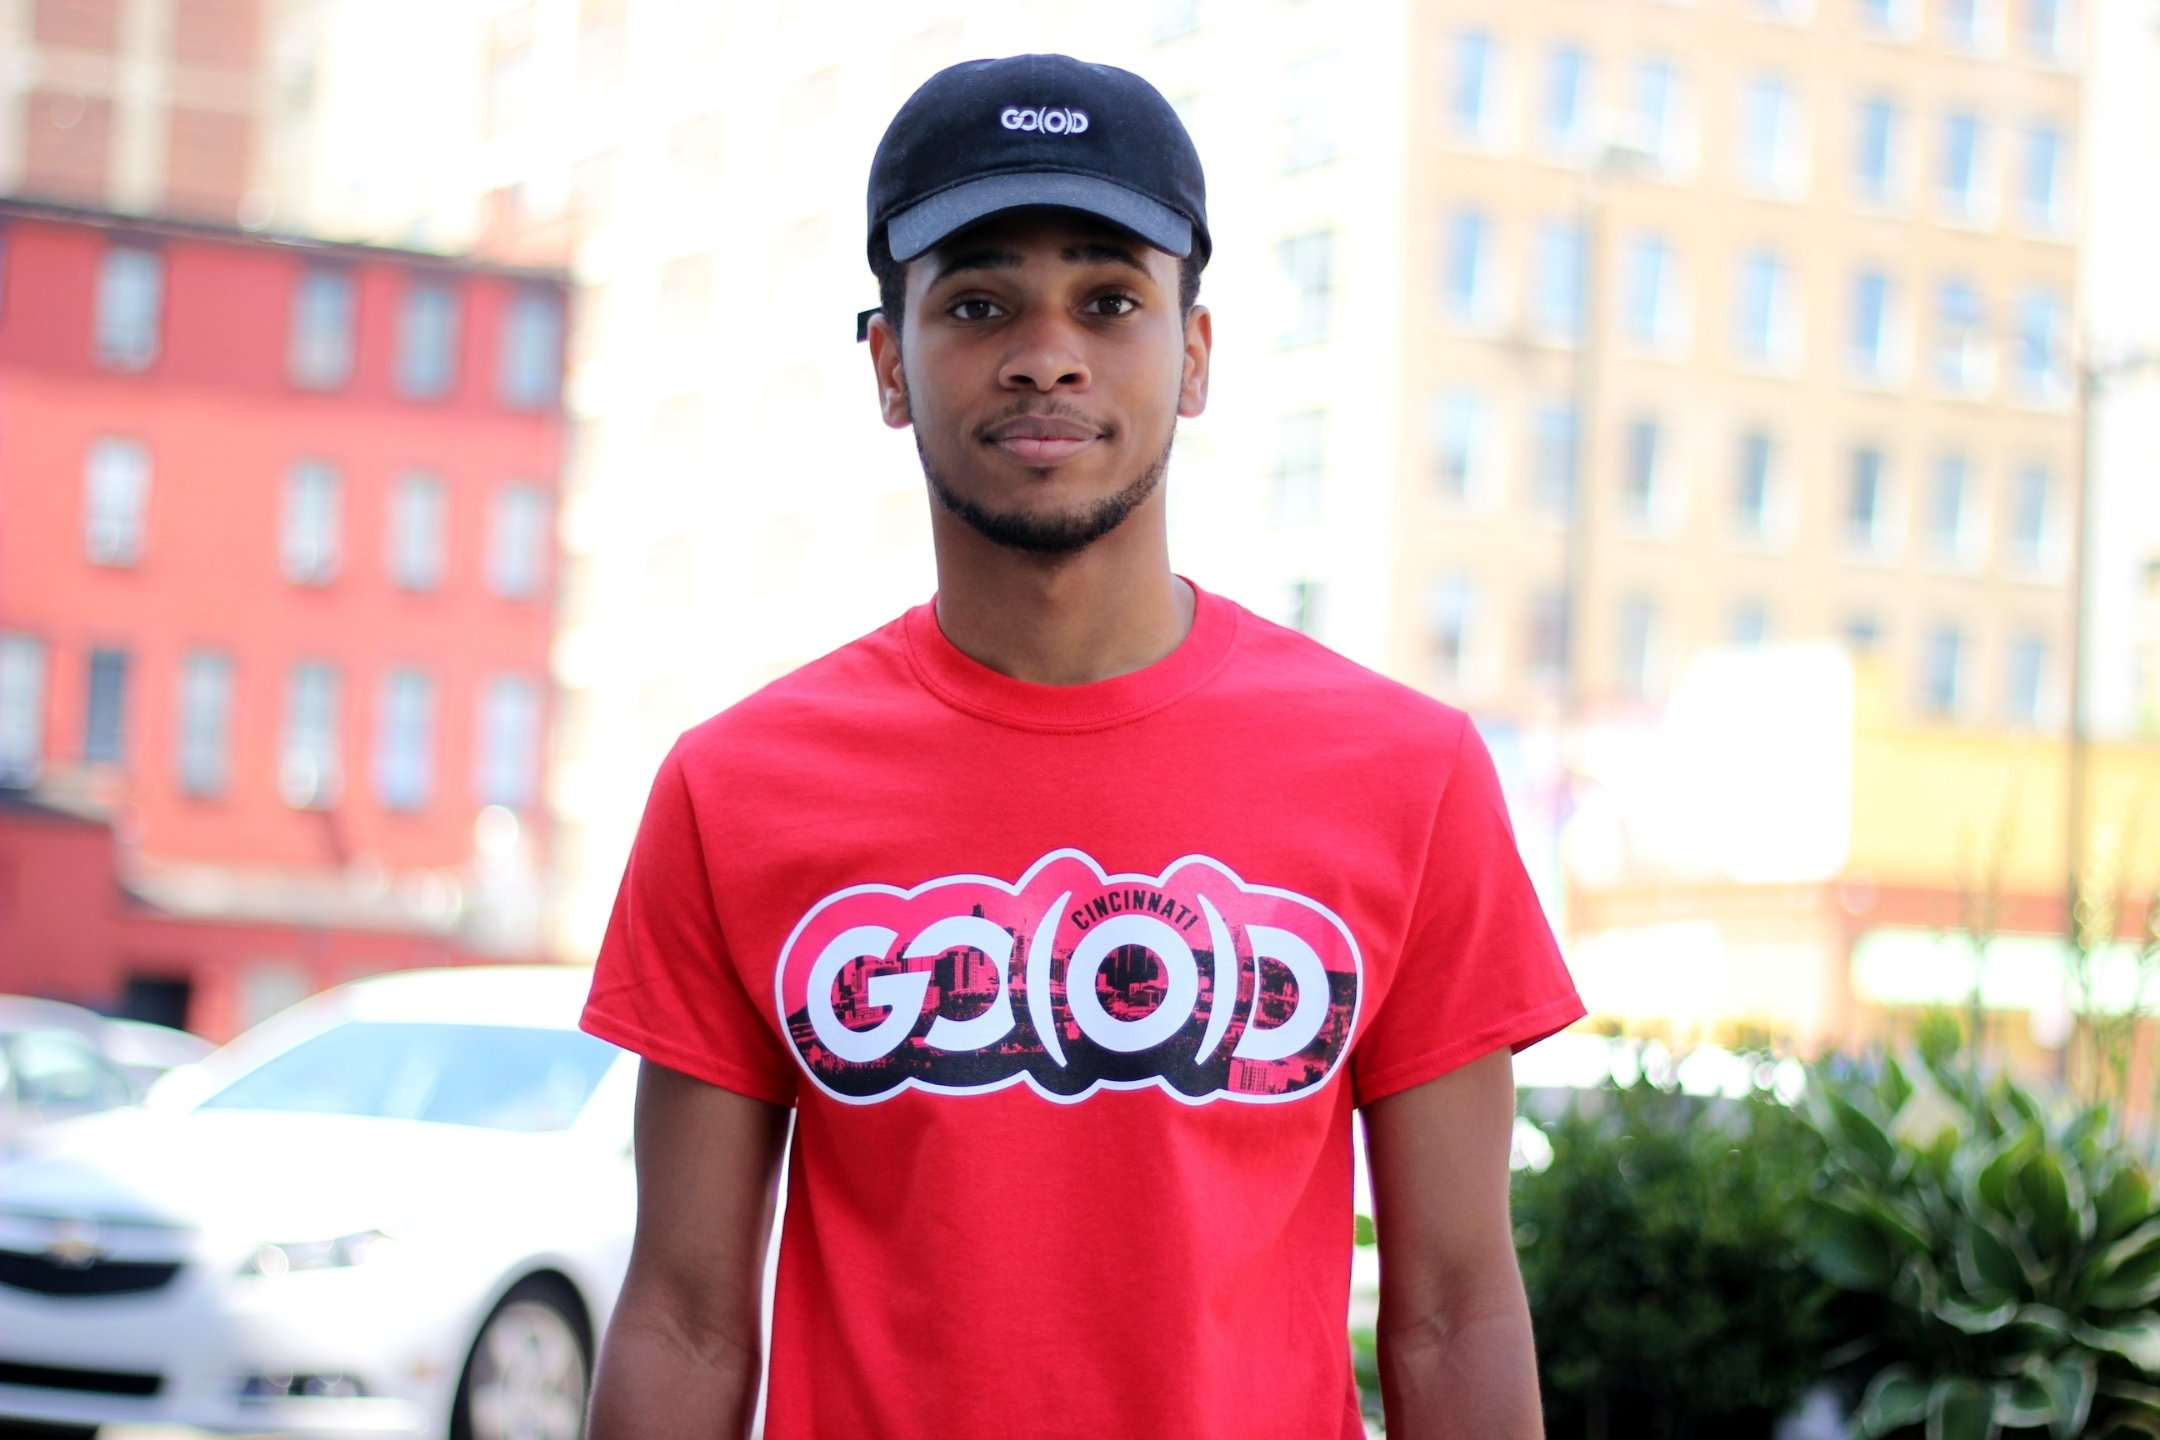 GO(O)D City tee-Cincinnati-red 00131